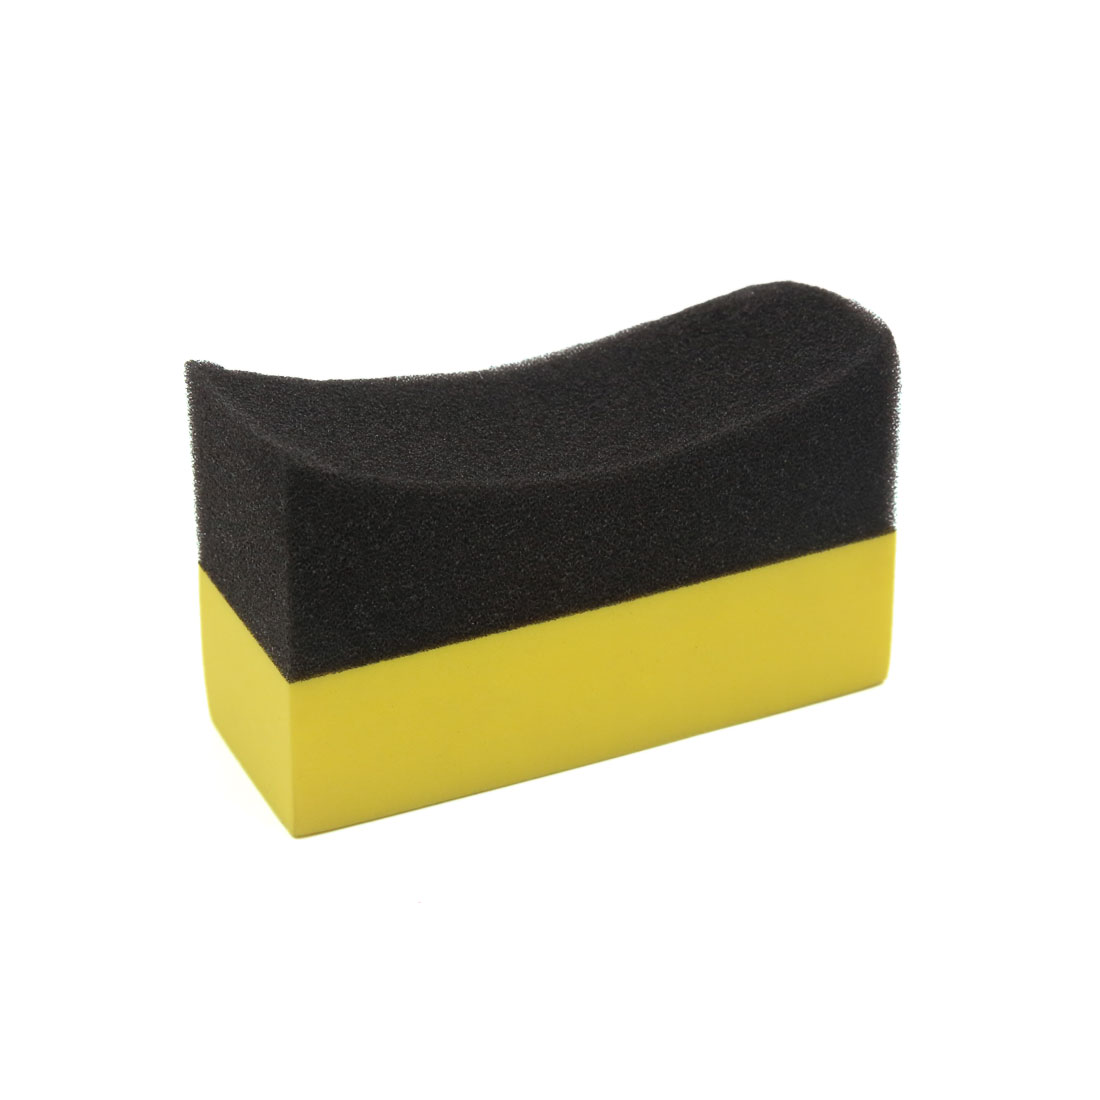 U-Shape Tire Waxing Polishing Sponge Foam Pads Tyre Clean Brush for Auto Car